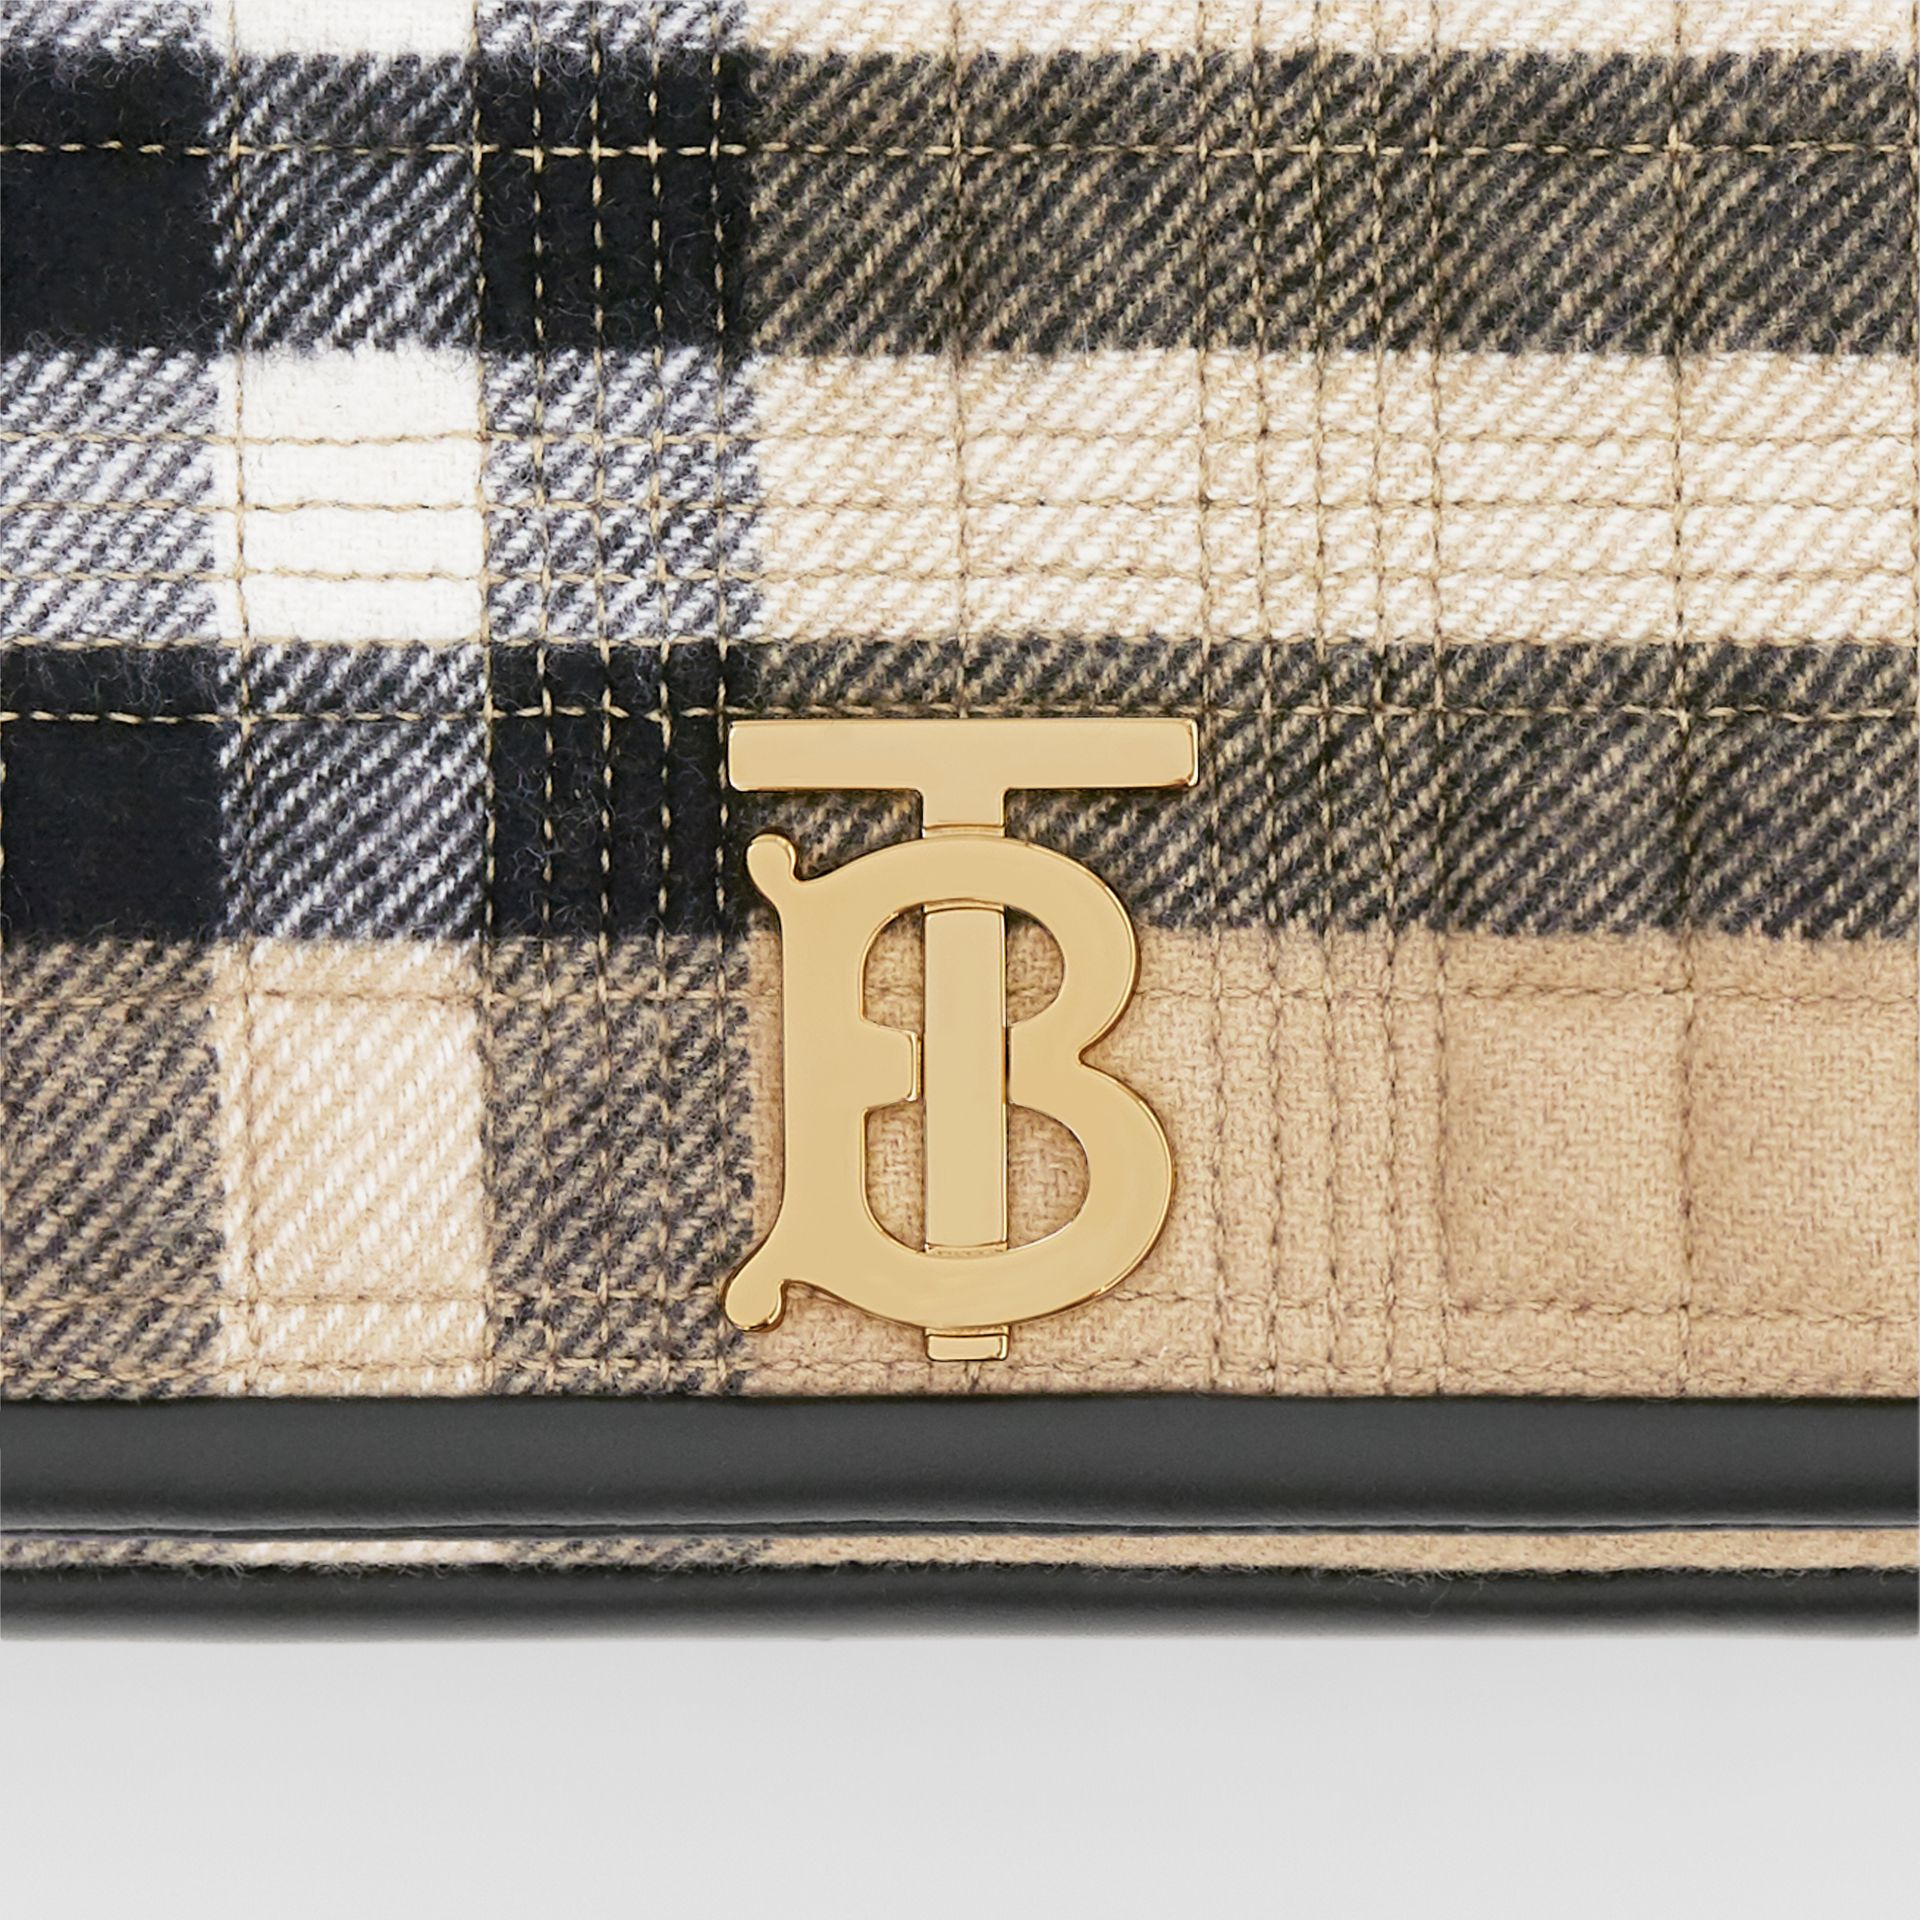 Small Check Cashmere Lola Bag in Archive Beige - Women | Burberry United States - gallery image 1